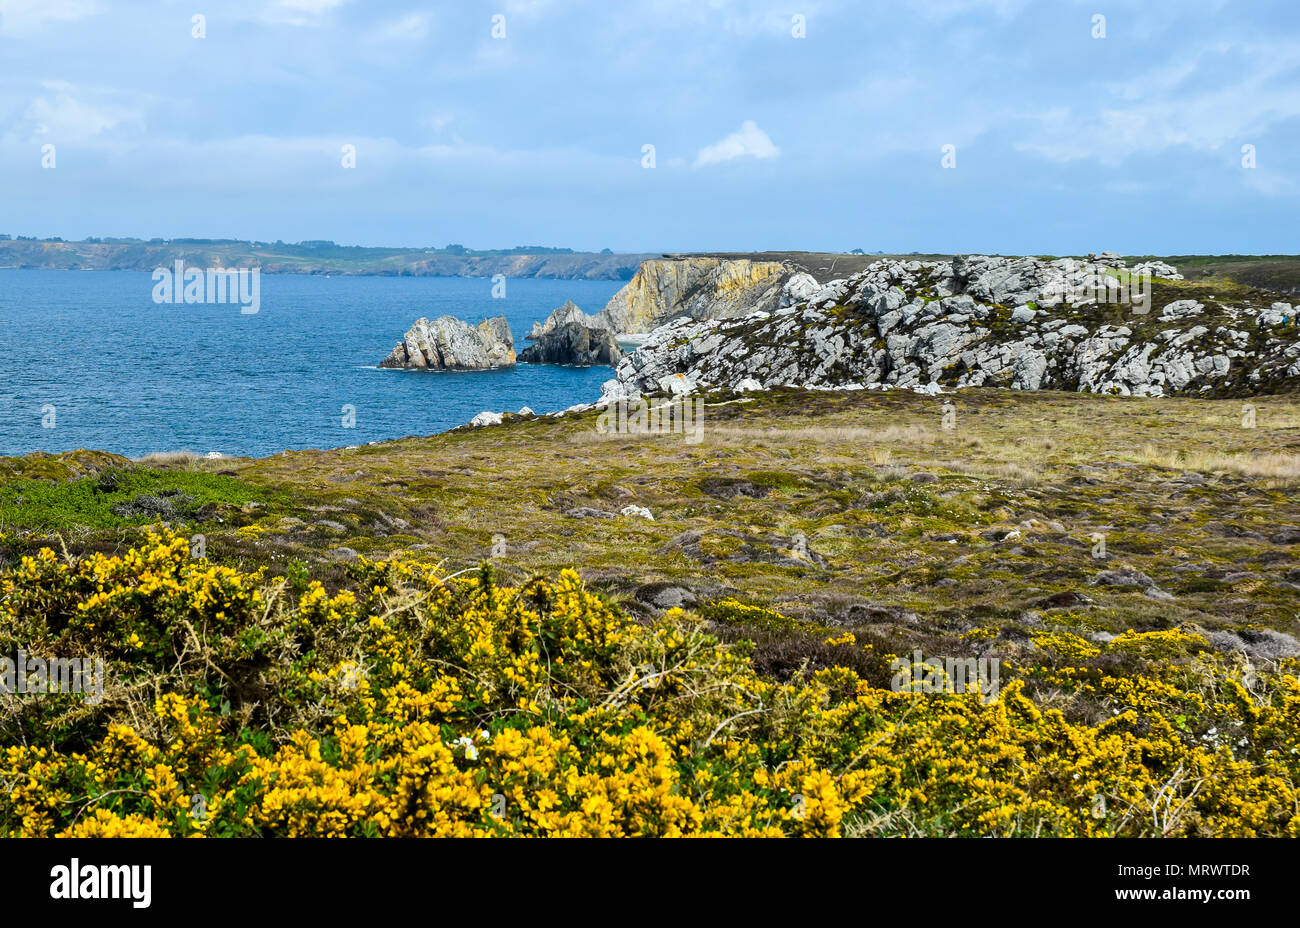 A stunning seaside view of cliffs, blue skies, and turquoise blue water in the Finistere near Camaret-sur-Mer in Brittany, France. Bright yellow gorse - Stock Image